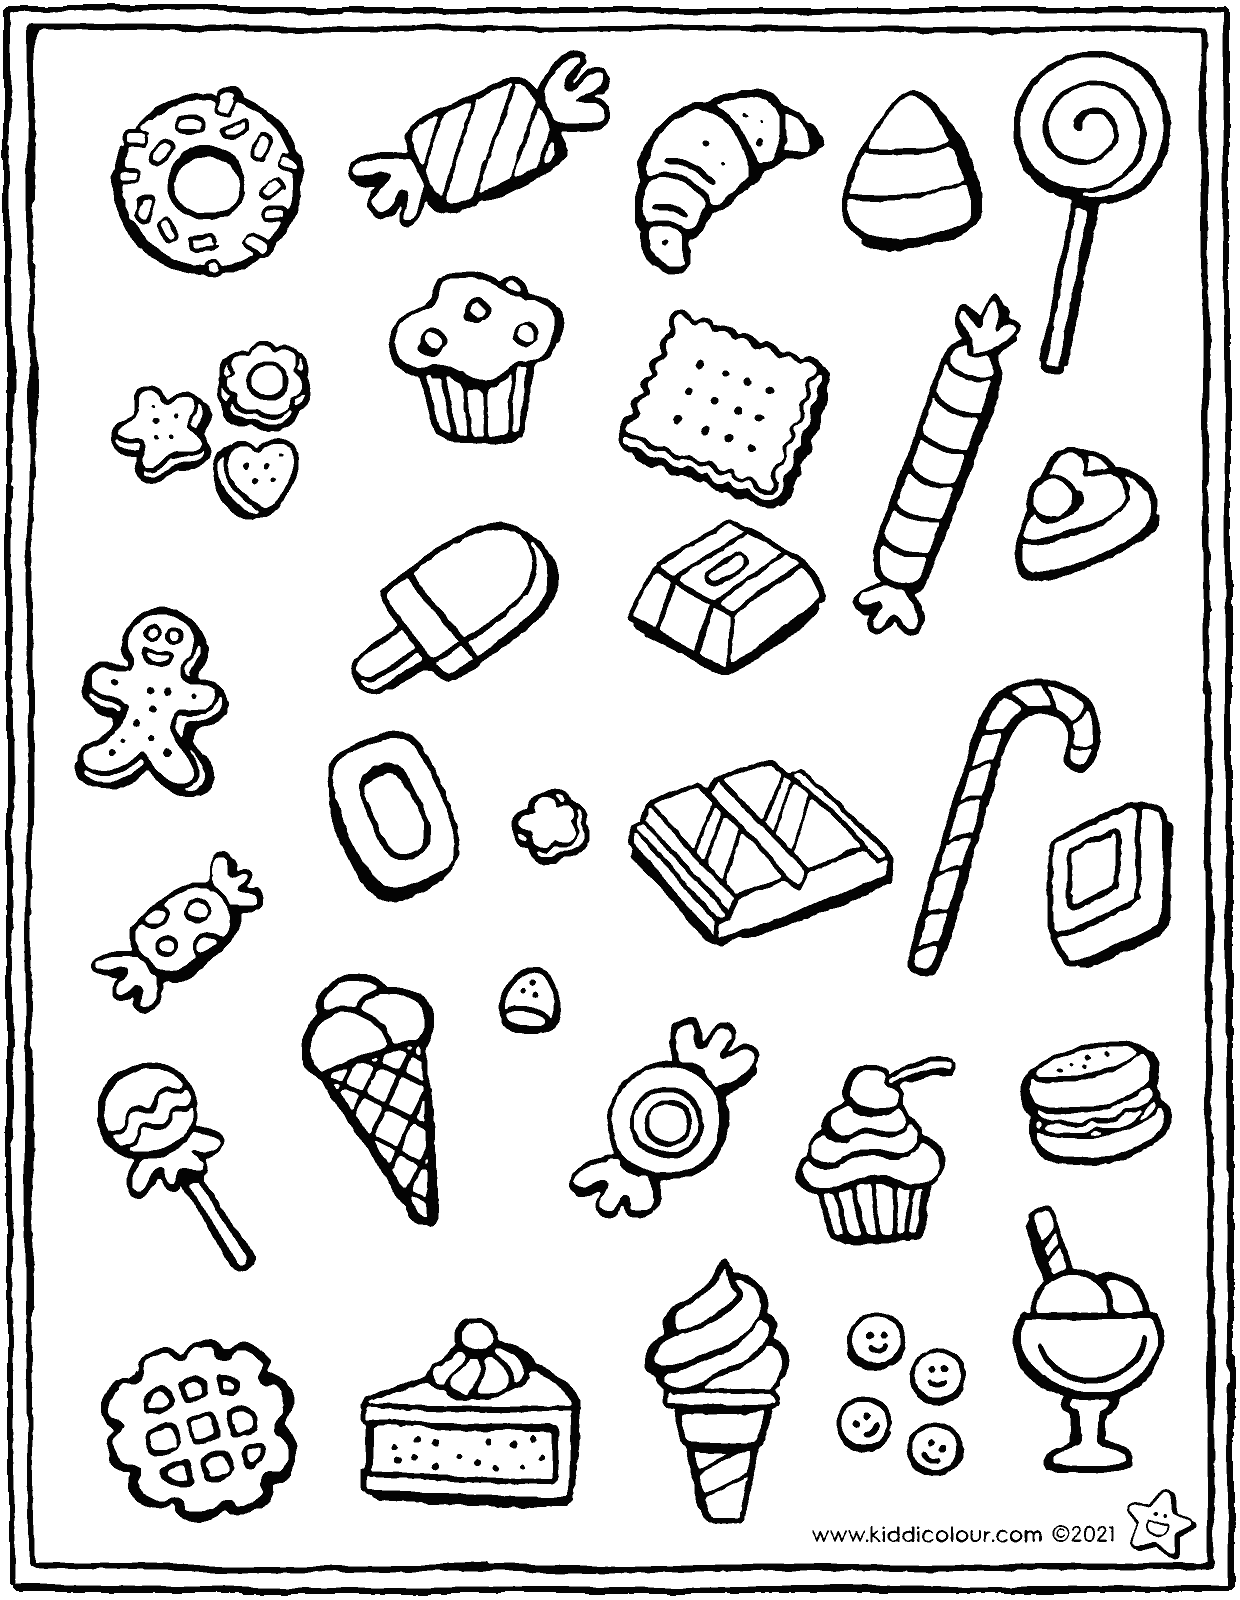 sweets, ice creams, biscuits and cakes colouring page drawing picture 01V